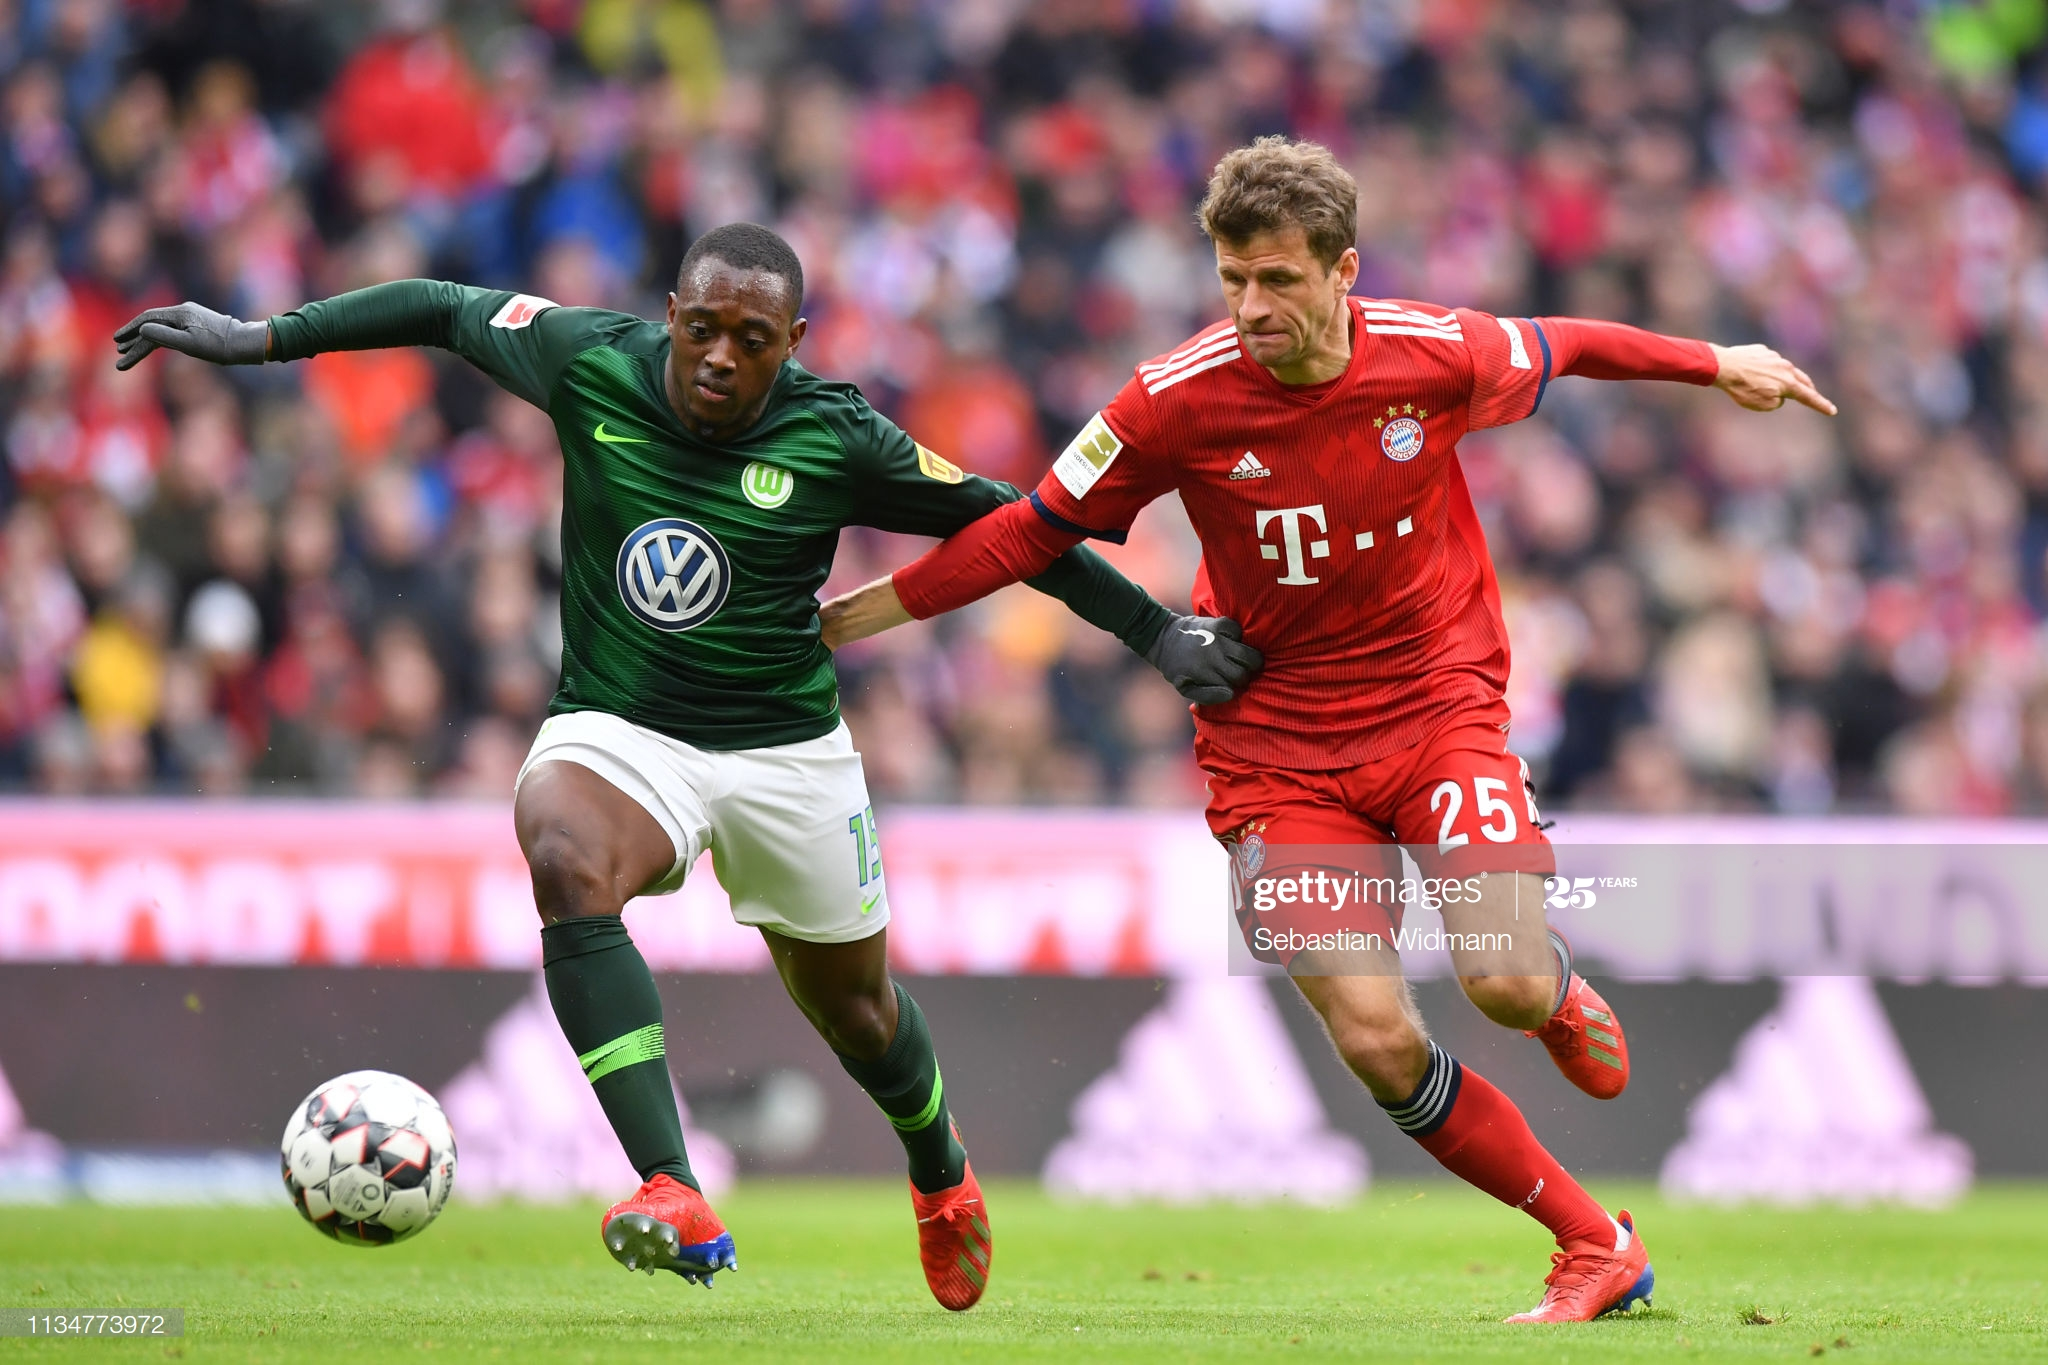 Wolfsburg vs Bayern Munich, preview